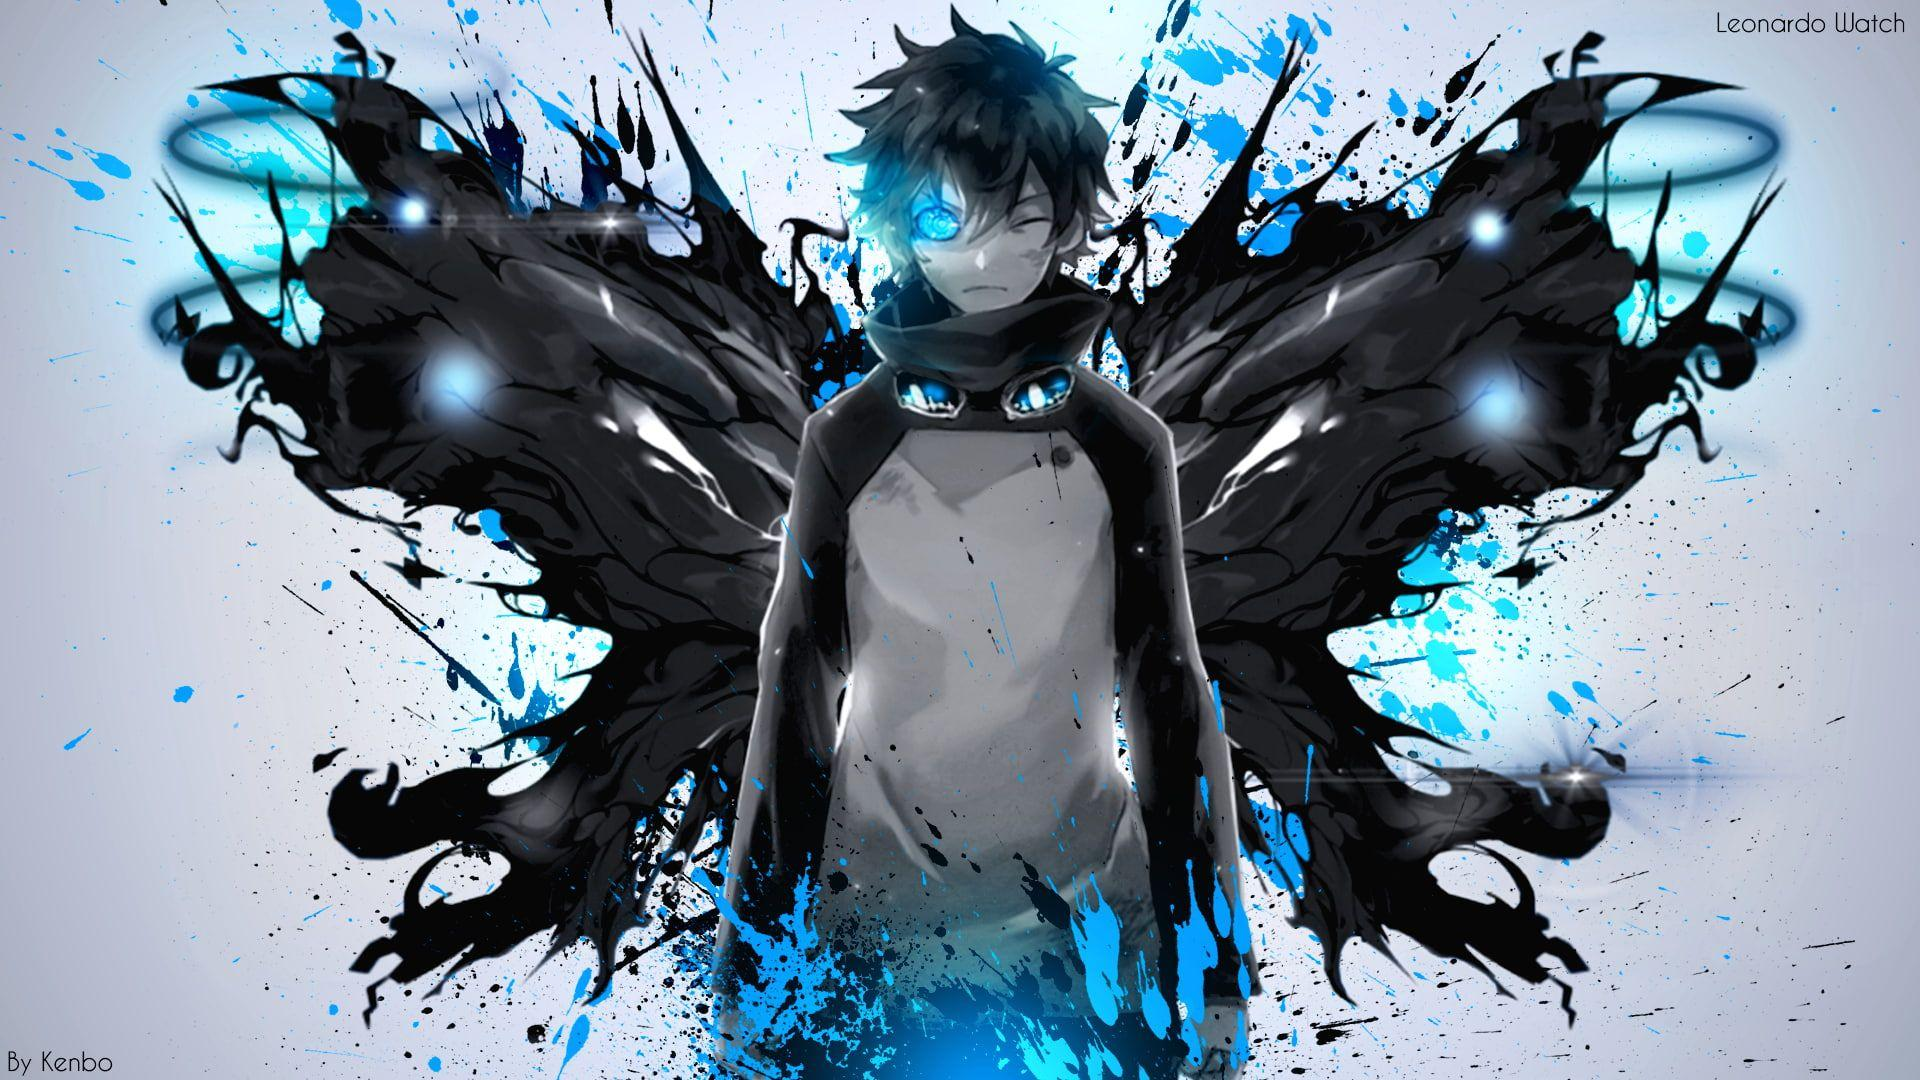 Blue Anime 1080p Wallpapers - Wallpaper Cave